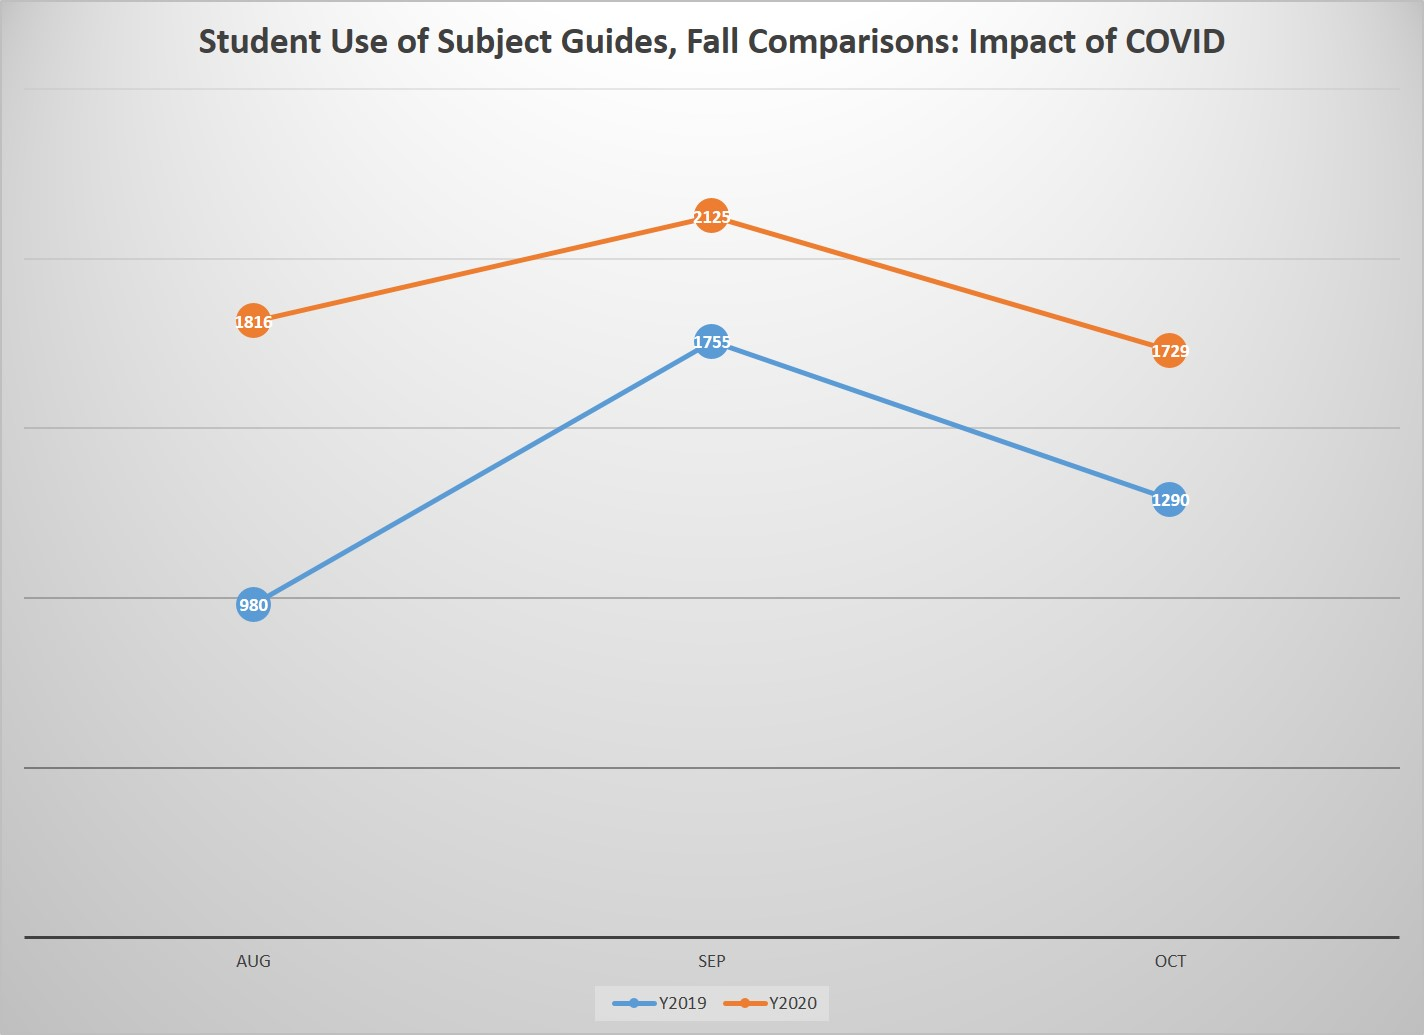 Addendum: Student Use of Subject Guides - Fall Comparison